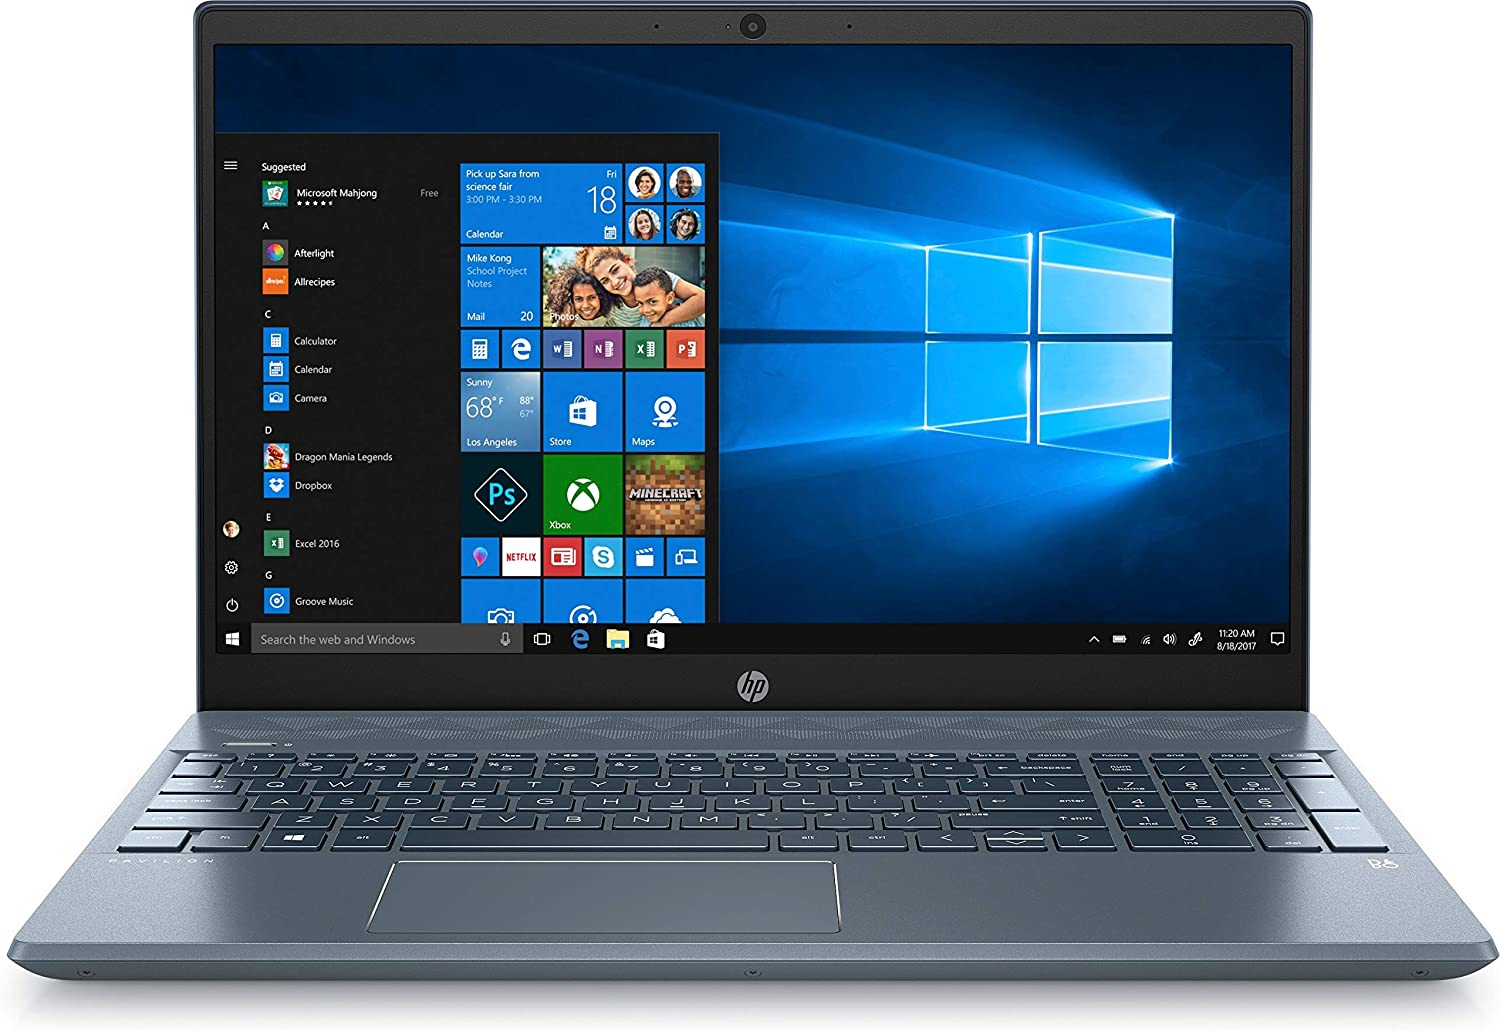 "HP Pavilion 15.6"" FHD AMD Ryzen 5 3500U AMD Radeon Vega 8 Graphics 8GB RAM 128GB SSD 1TB HDD Webcam Windows 10 Blue Laptop (Renewed)"